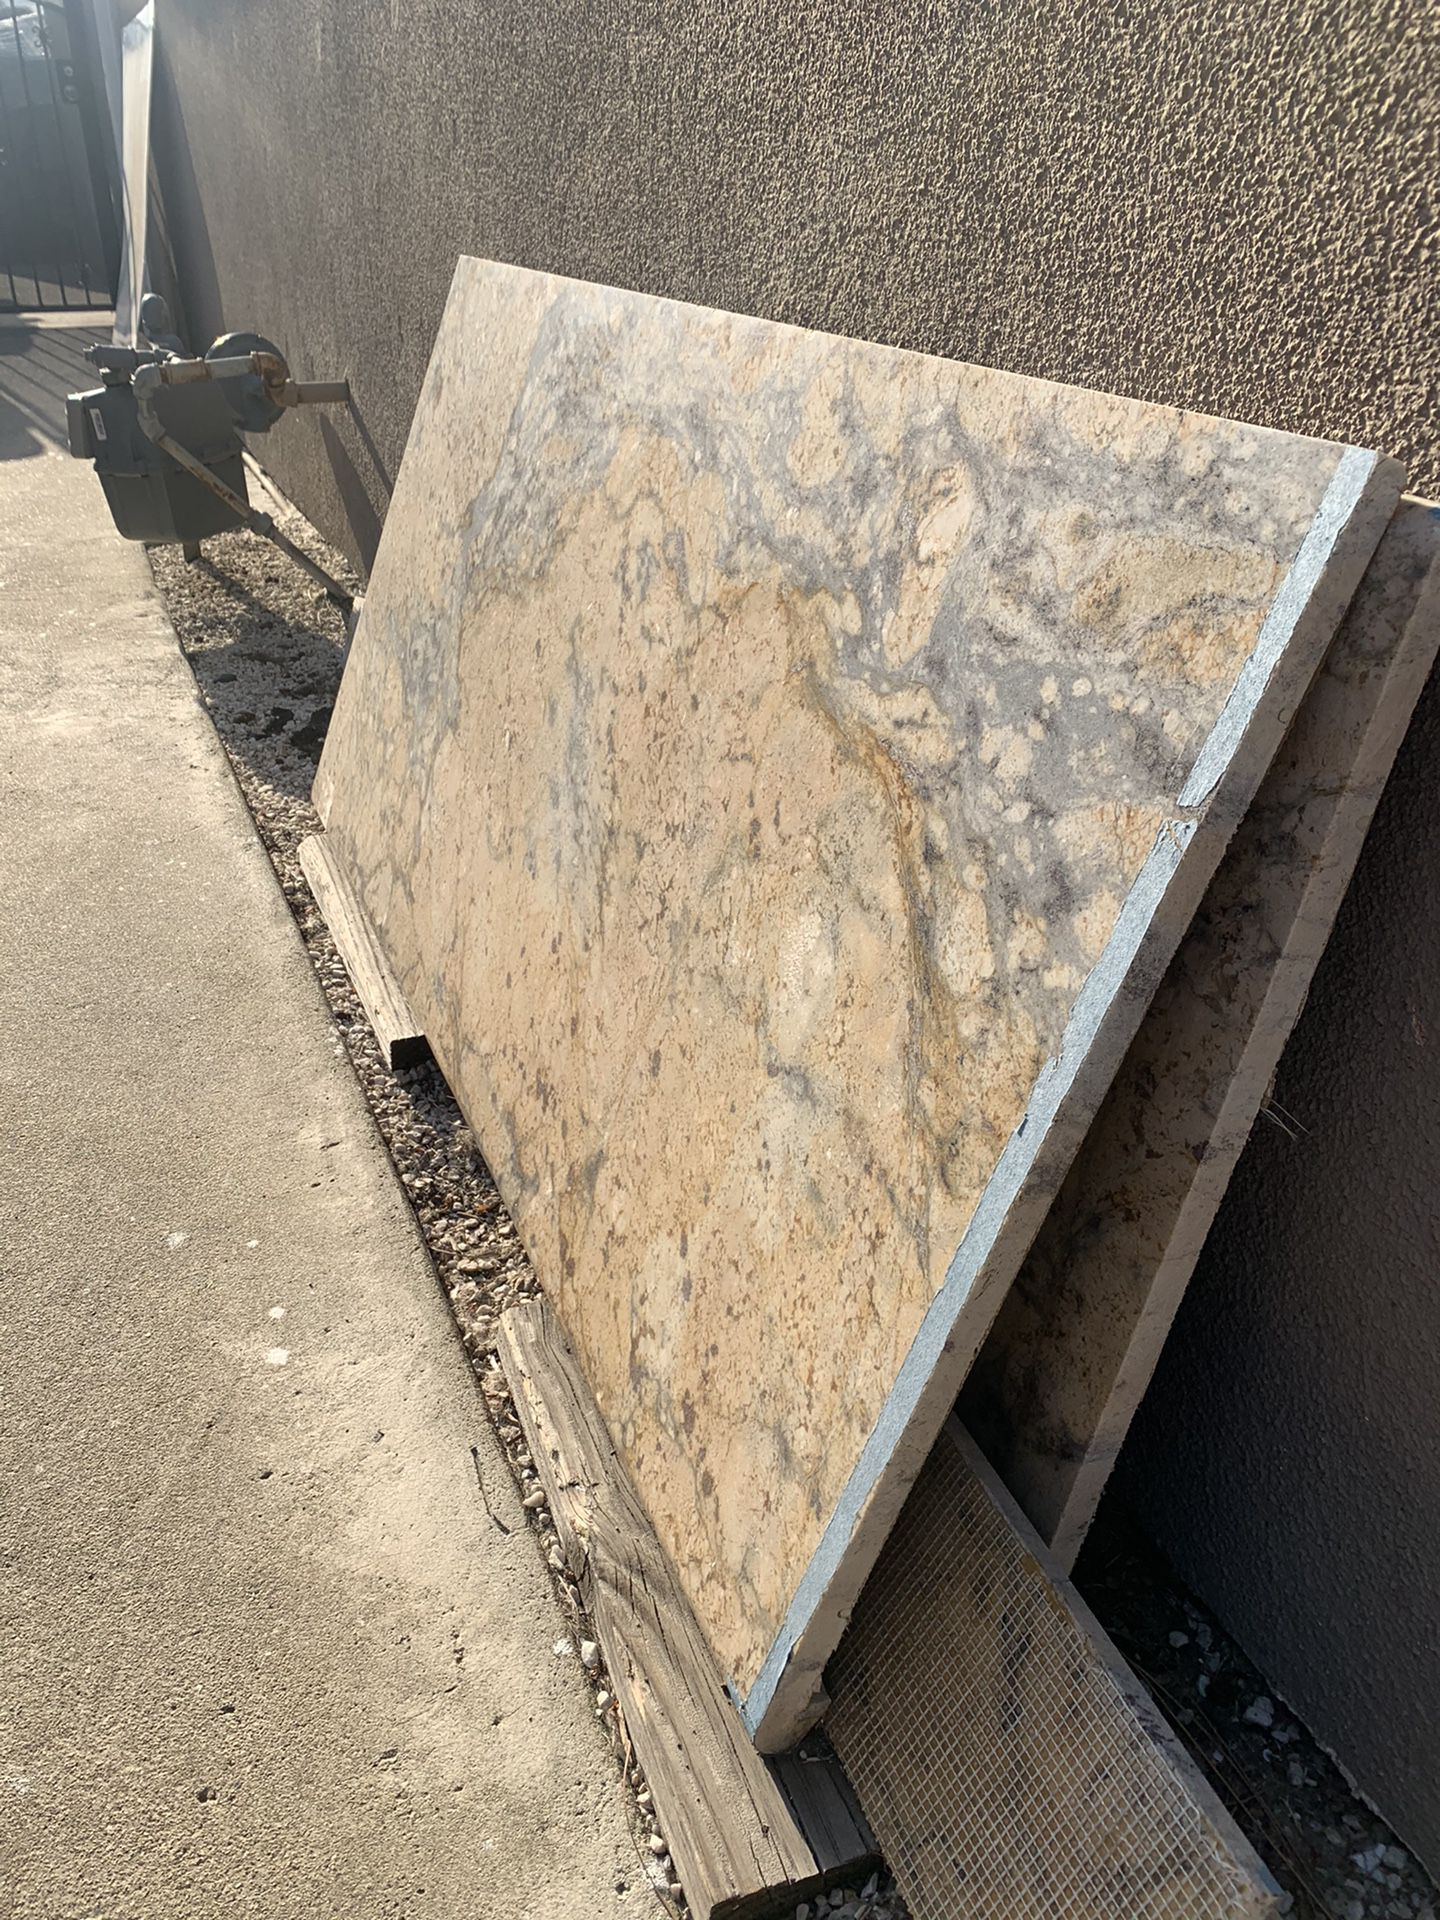 Granite bullnose countertop piece 54 X 26.5 with extra pieces